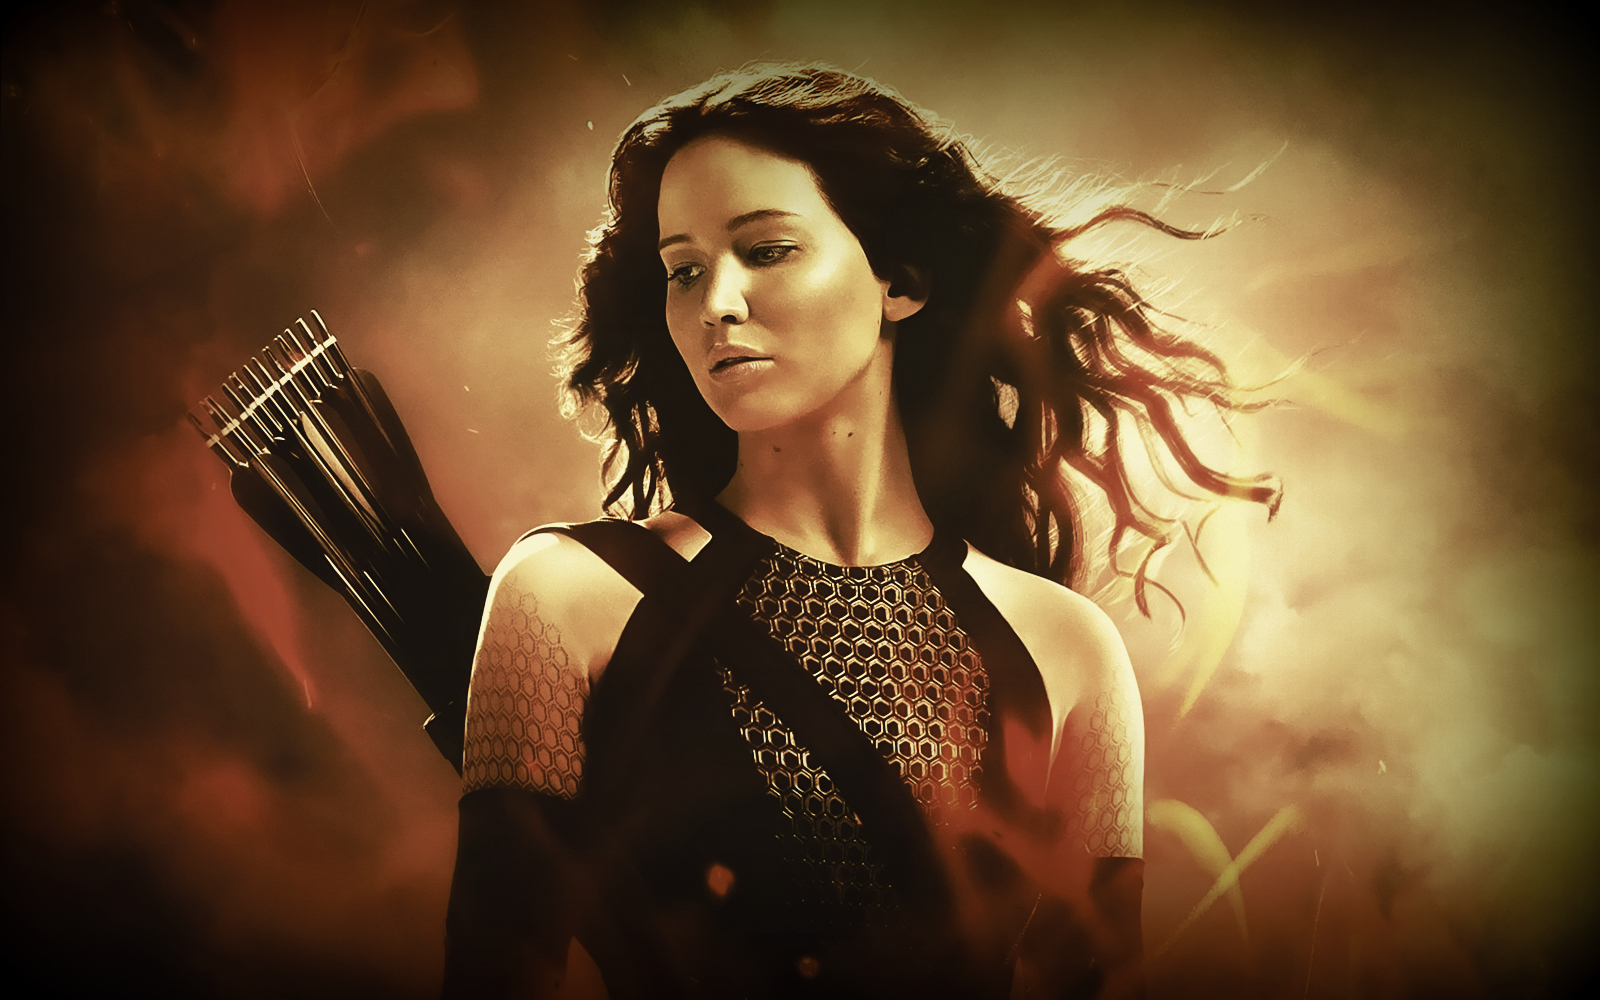 Jennifer Lawrence In Hunger Games Wallpaper  Movies HD Wallpapers 1600x1000